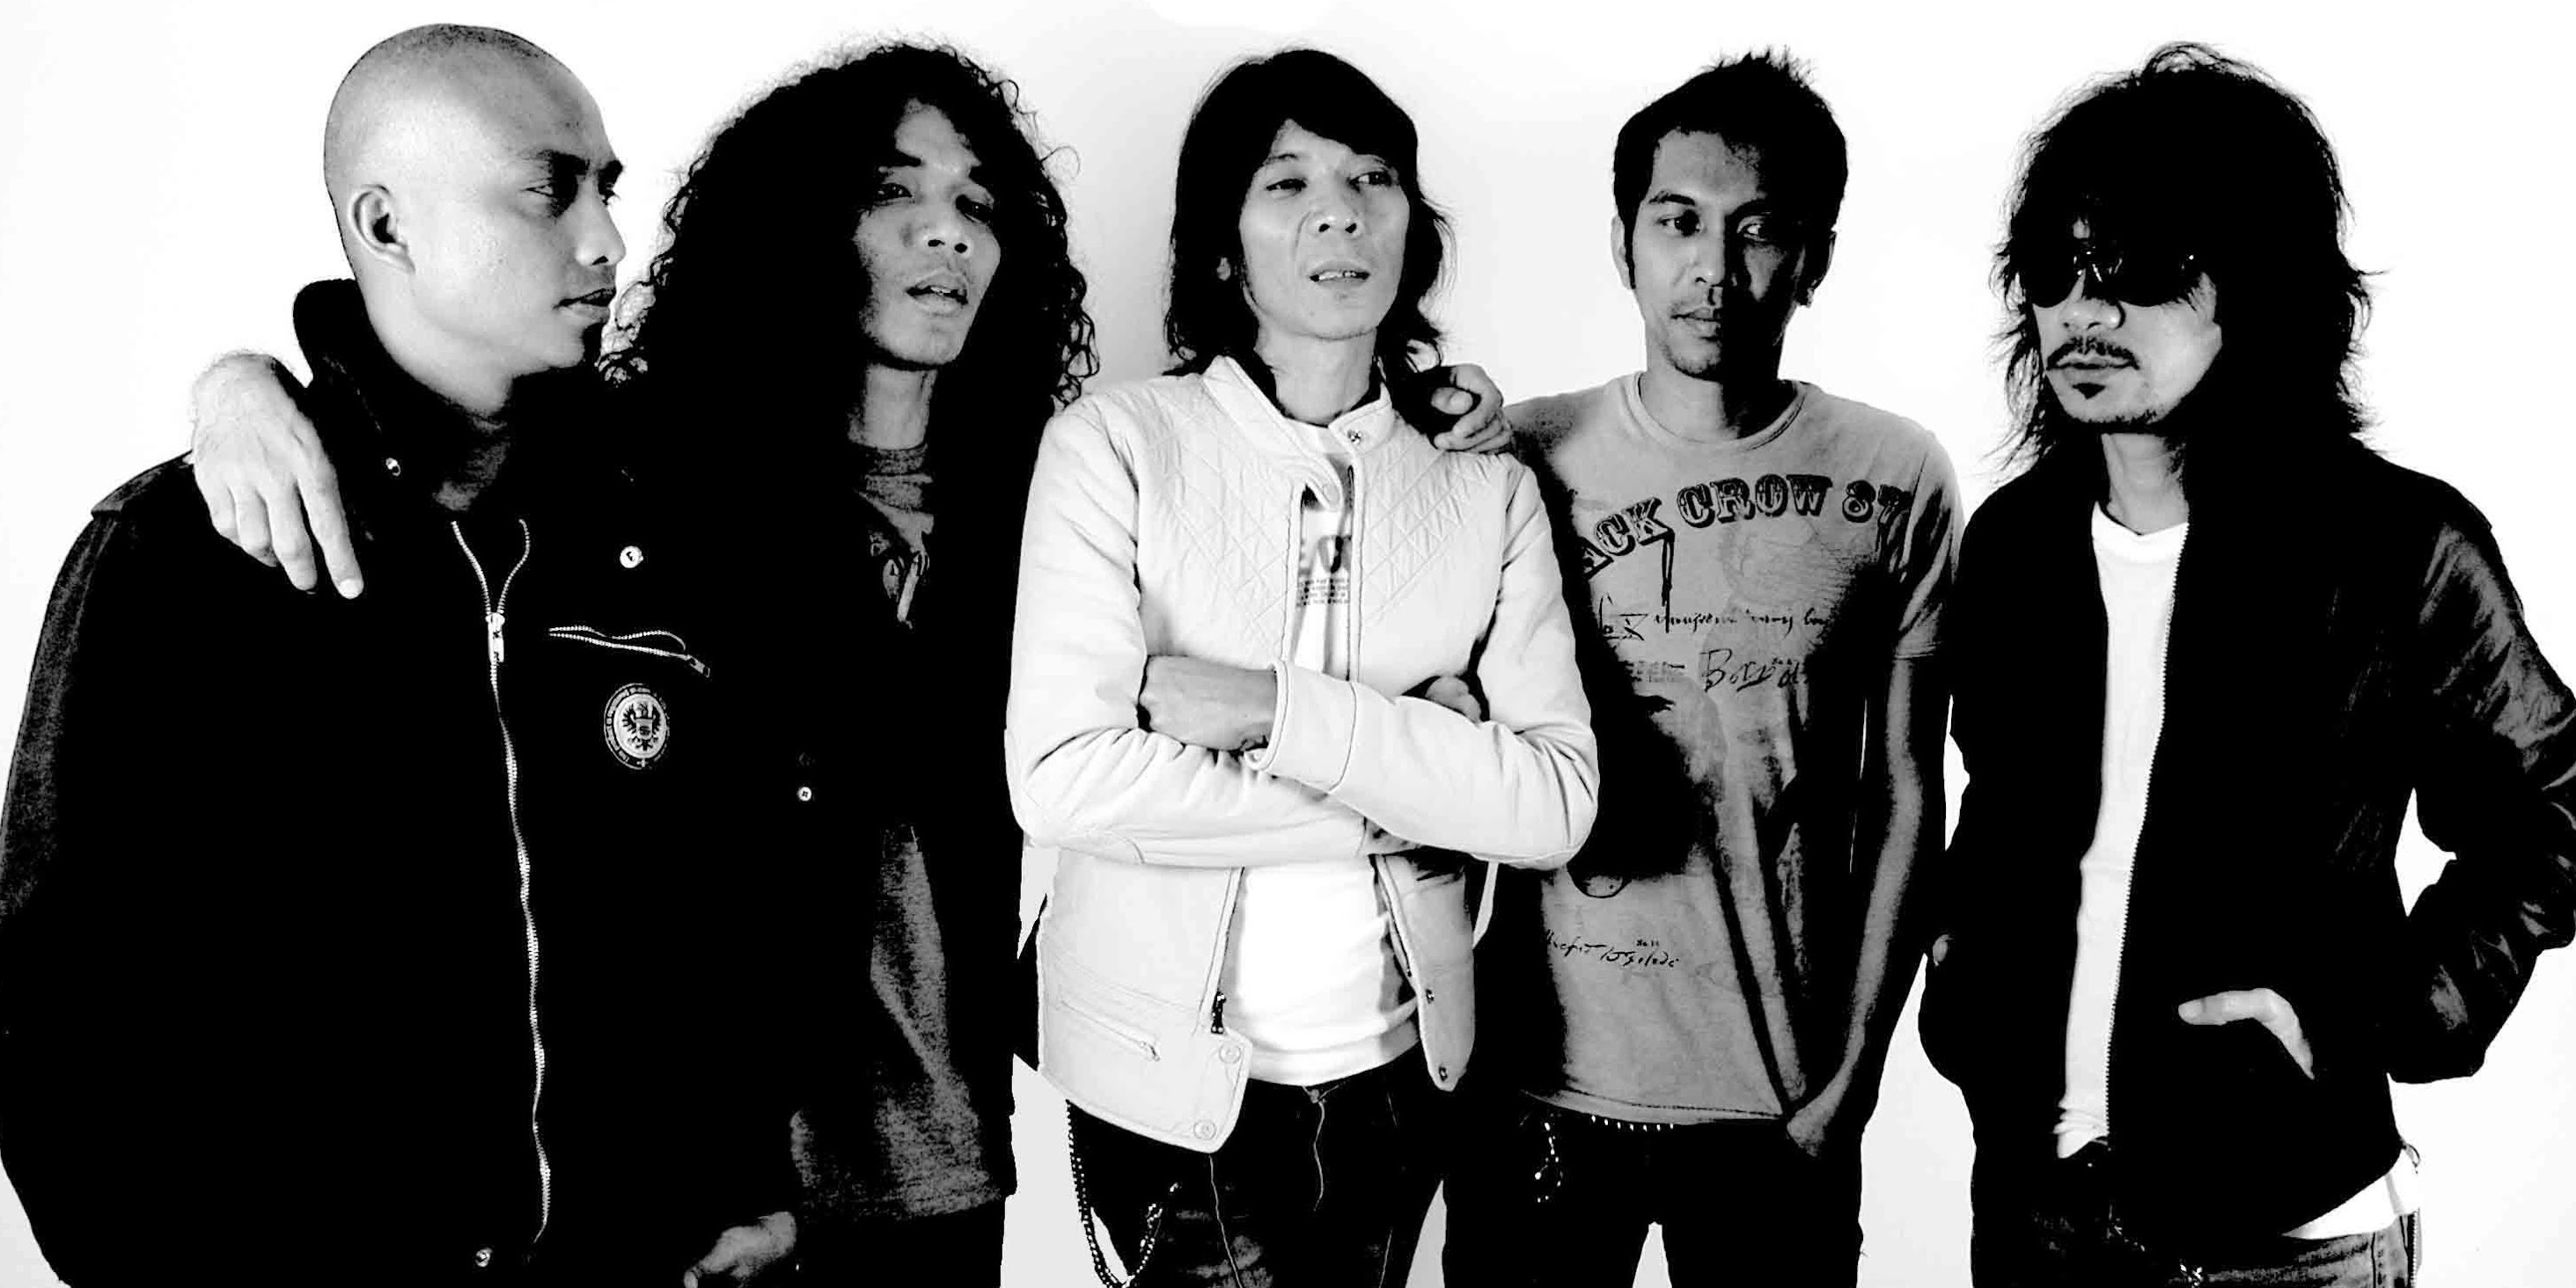 Slank recorded Palalopeyank with Steve Lillywhite